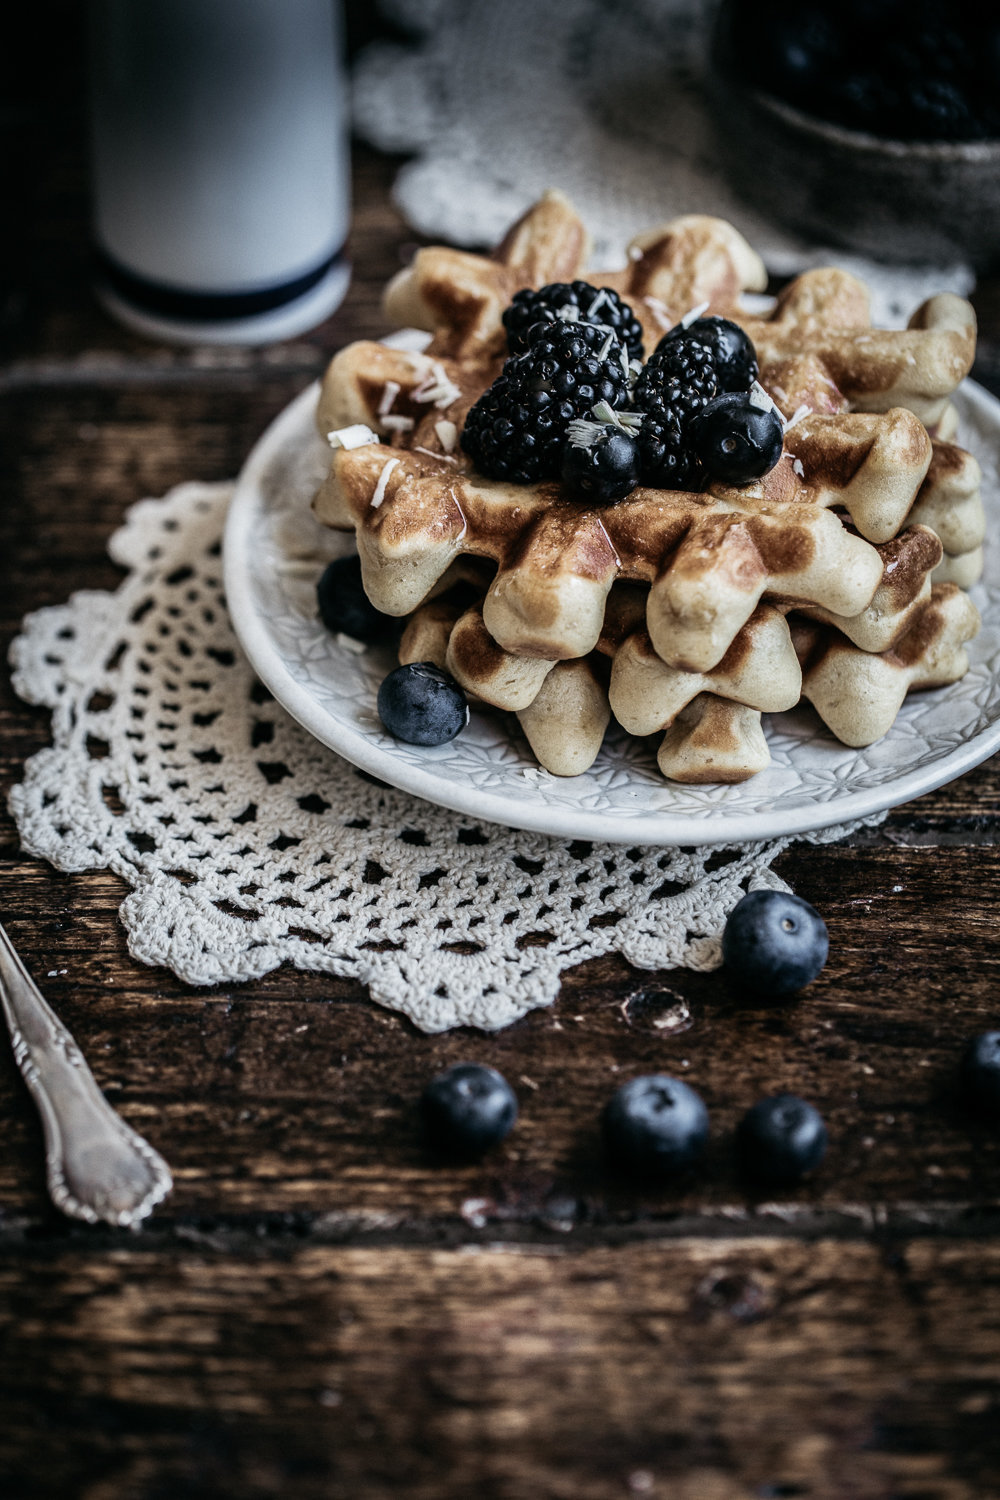 Vanilla Bean Buttermilk Waffles  | Anisa Sabet | The Macadames | Food Styling | Food Photography161